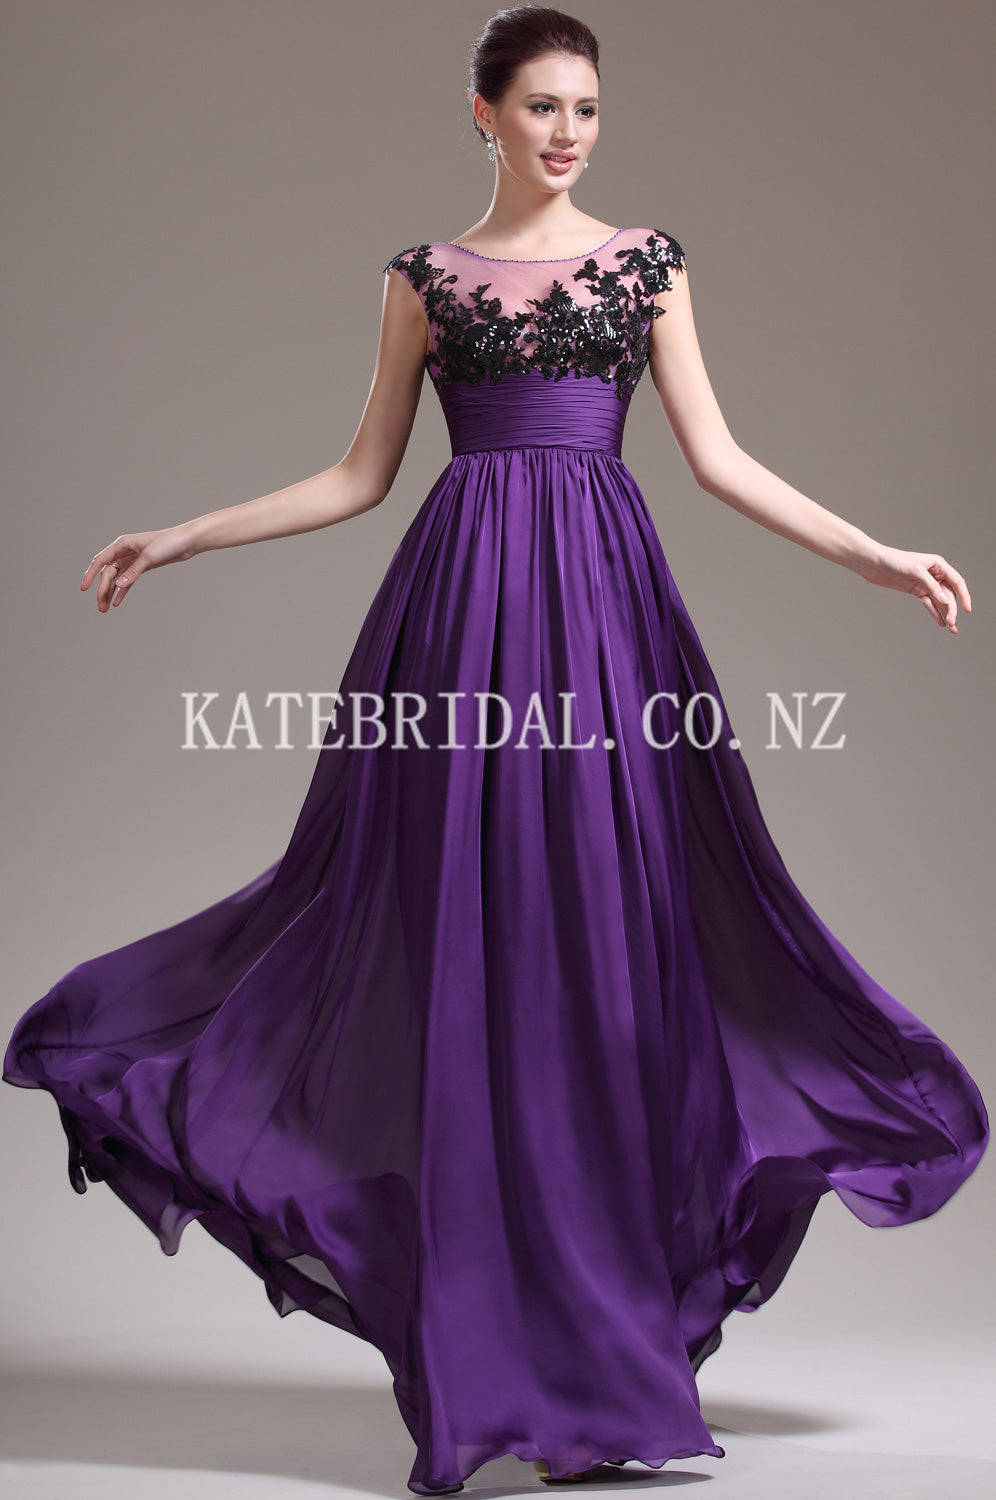 Appliqued Illusion Scoop Neck Cap Sleeves Floor-Length Chiffon Evening Dress